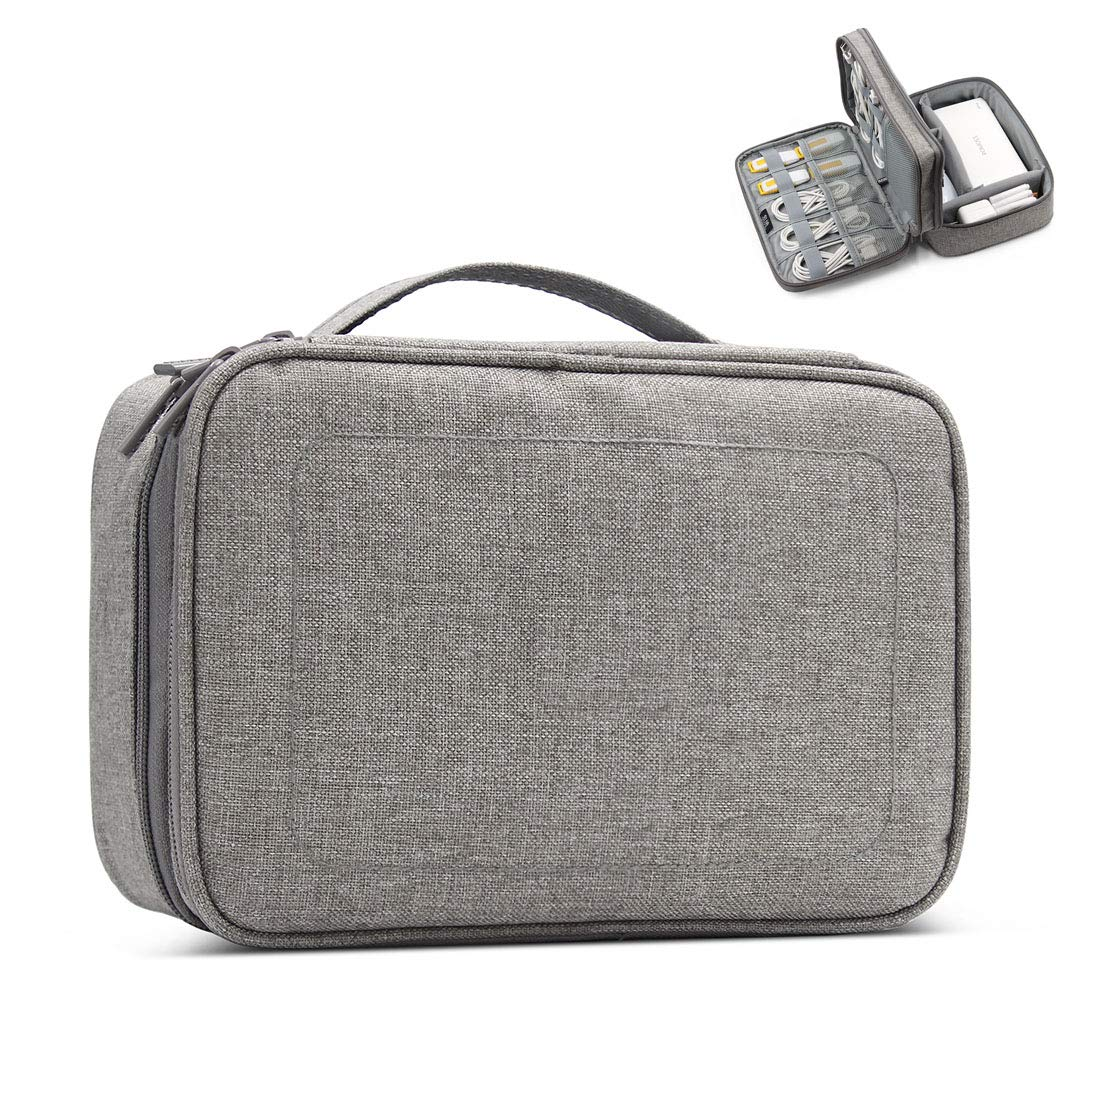 UKAN Double Layer Multi-Functional Electronic Accessories Organizer, Travel Gadget Bag for Cables, USB Flash Drive, Plug and More, Grey